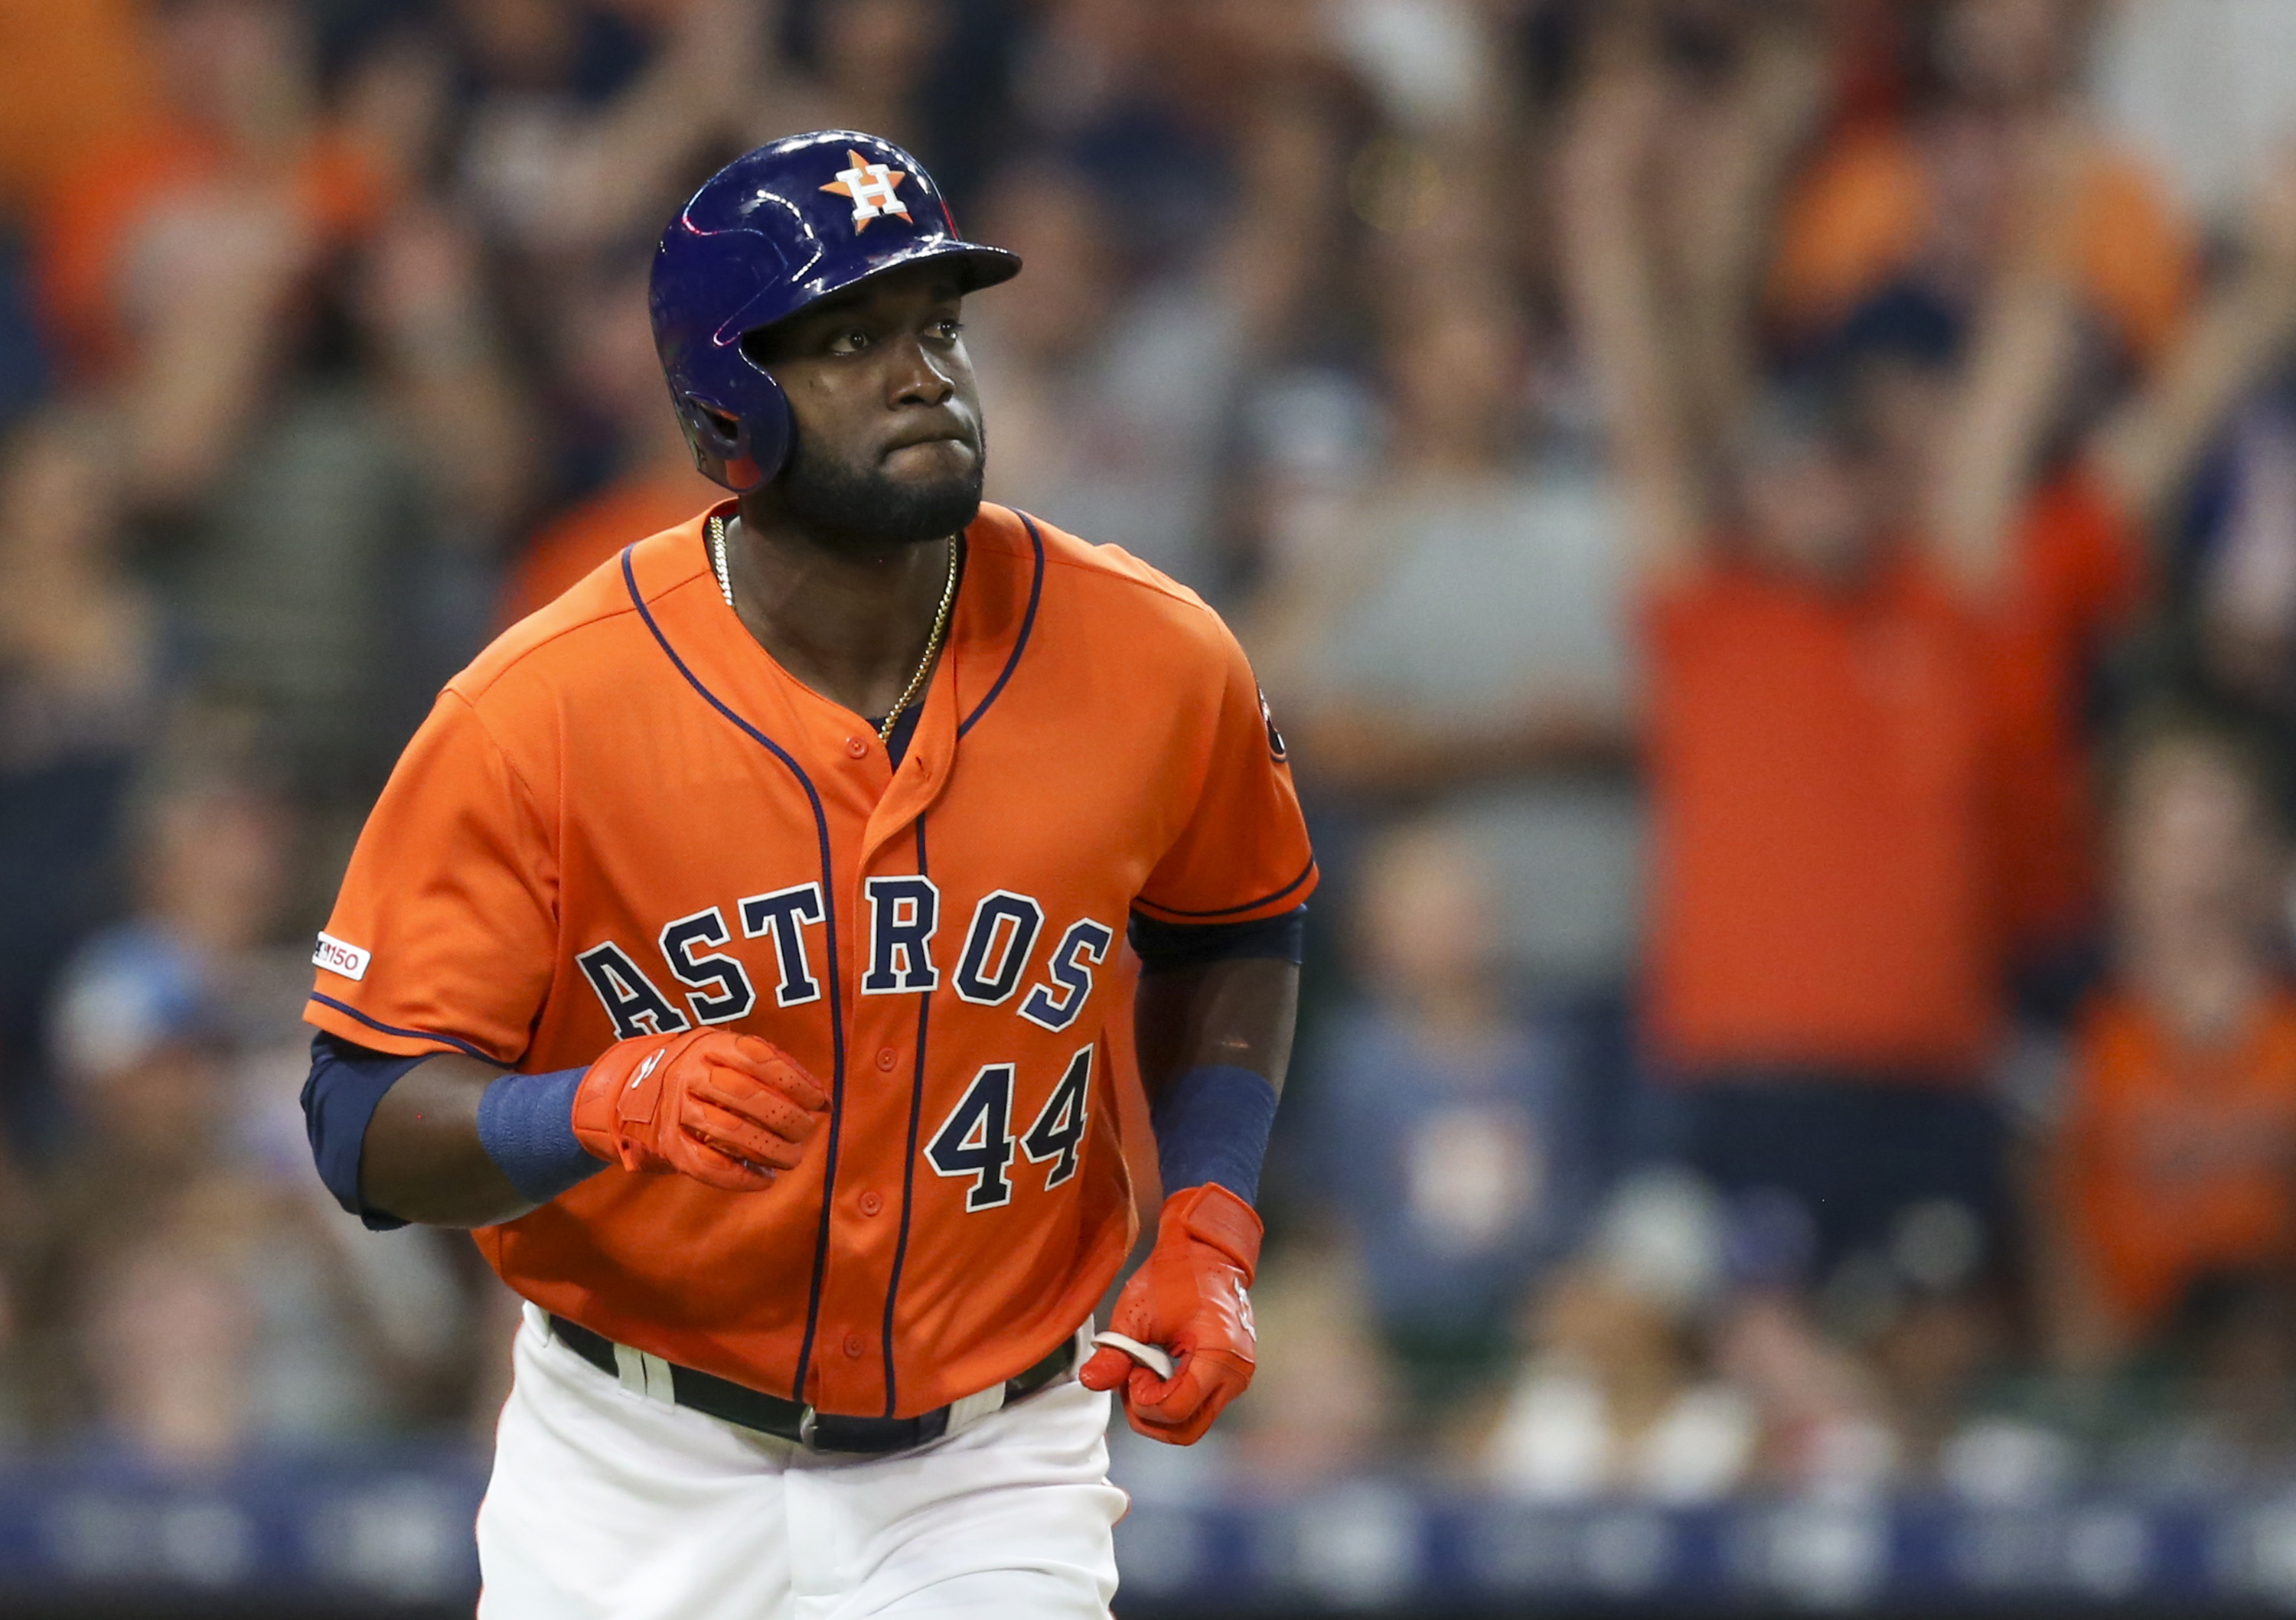 Season-ending knee surgery for Yordan Alvarez could spell doom for Astros